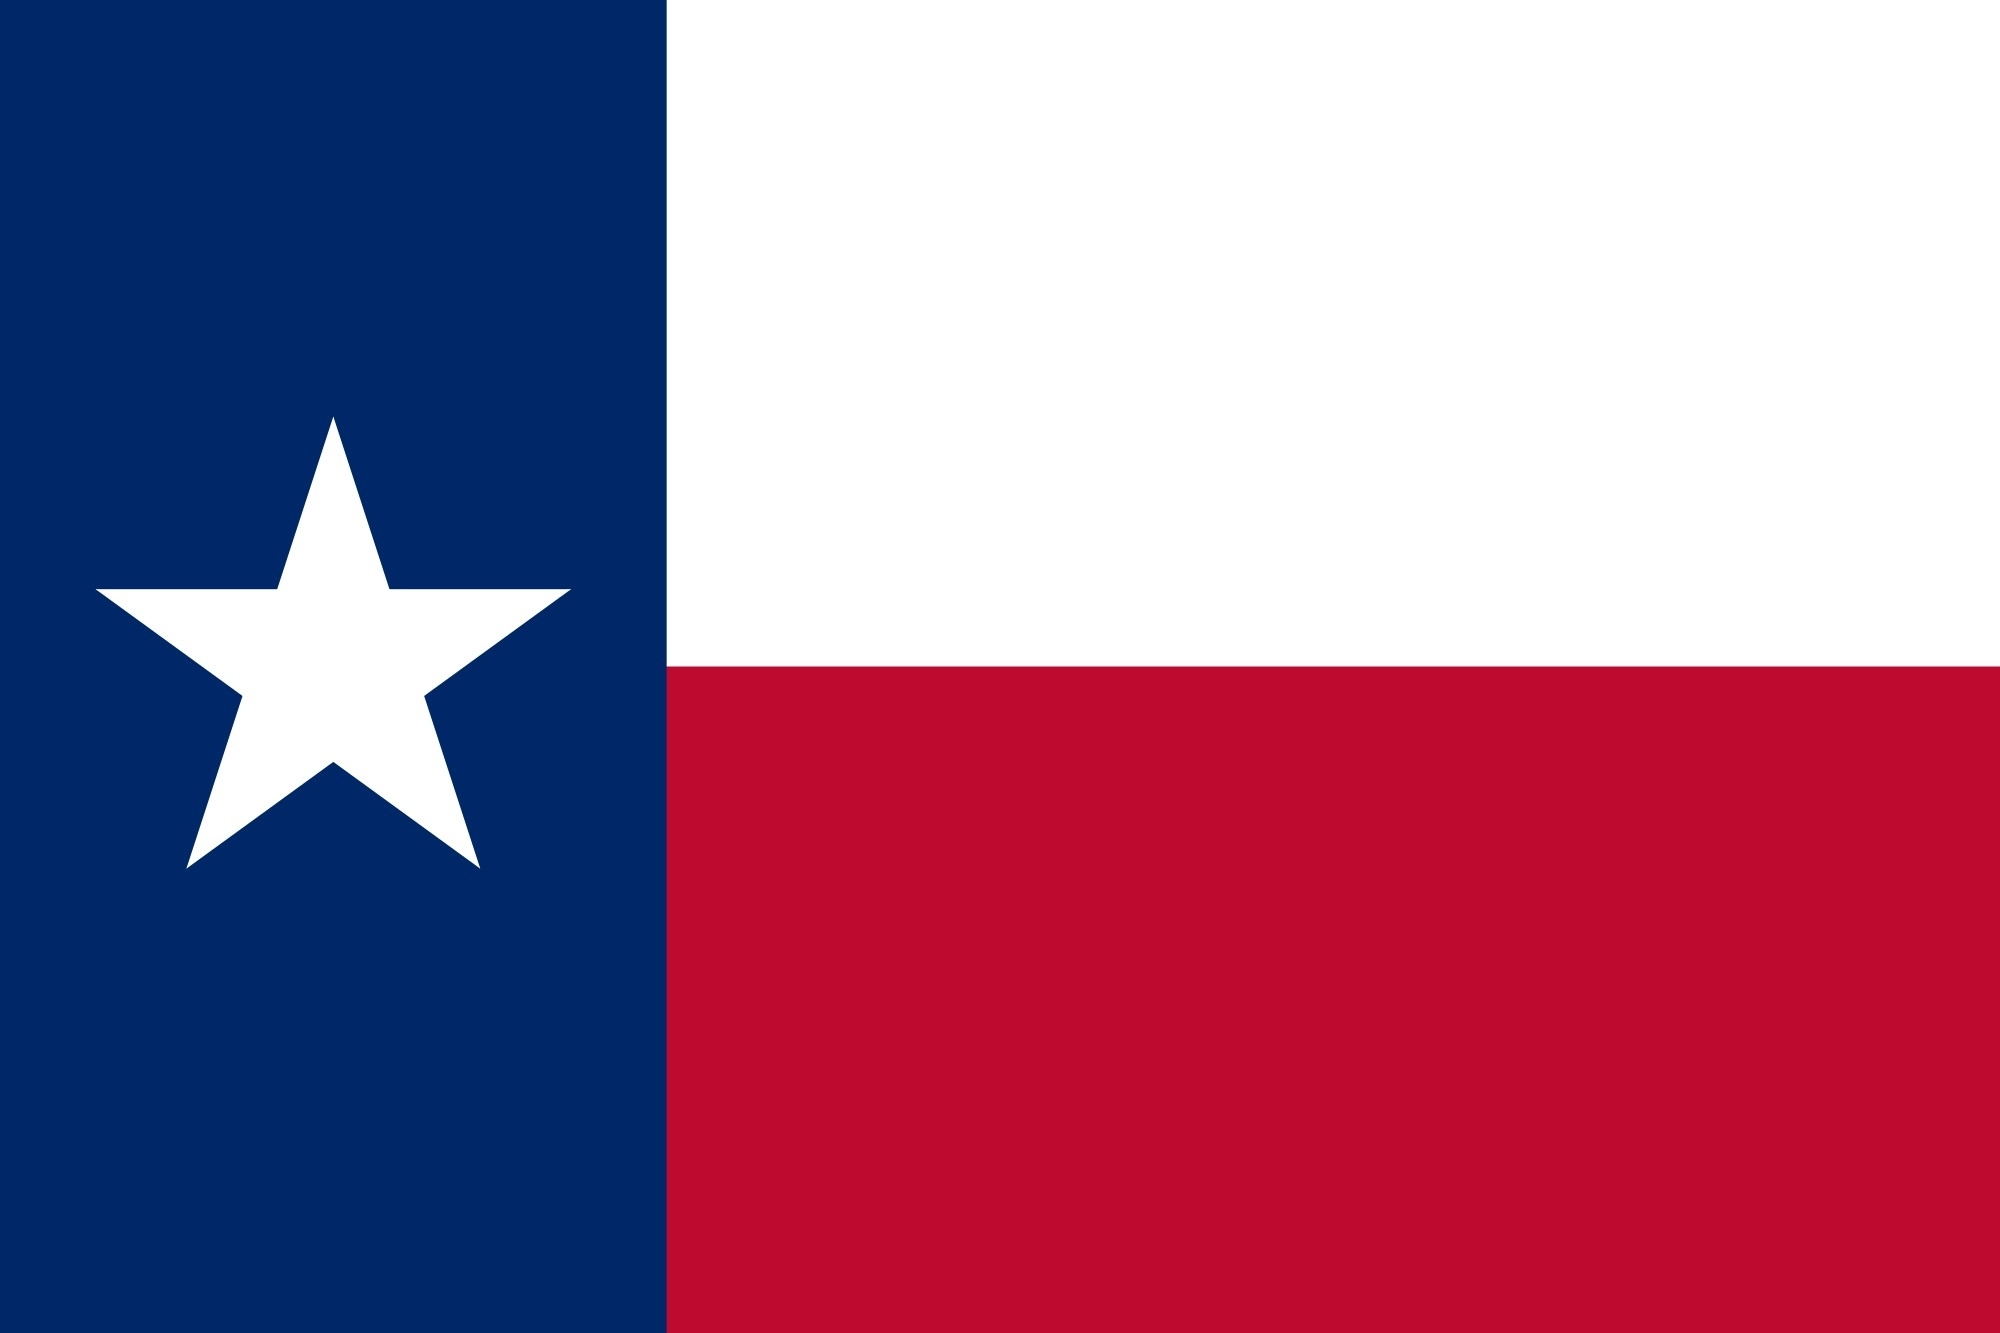 texas flag wallpaper ·① download free cool hd wallpapers for